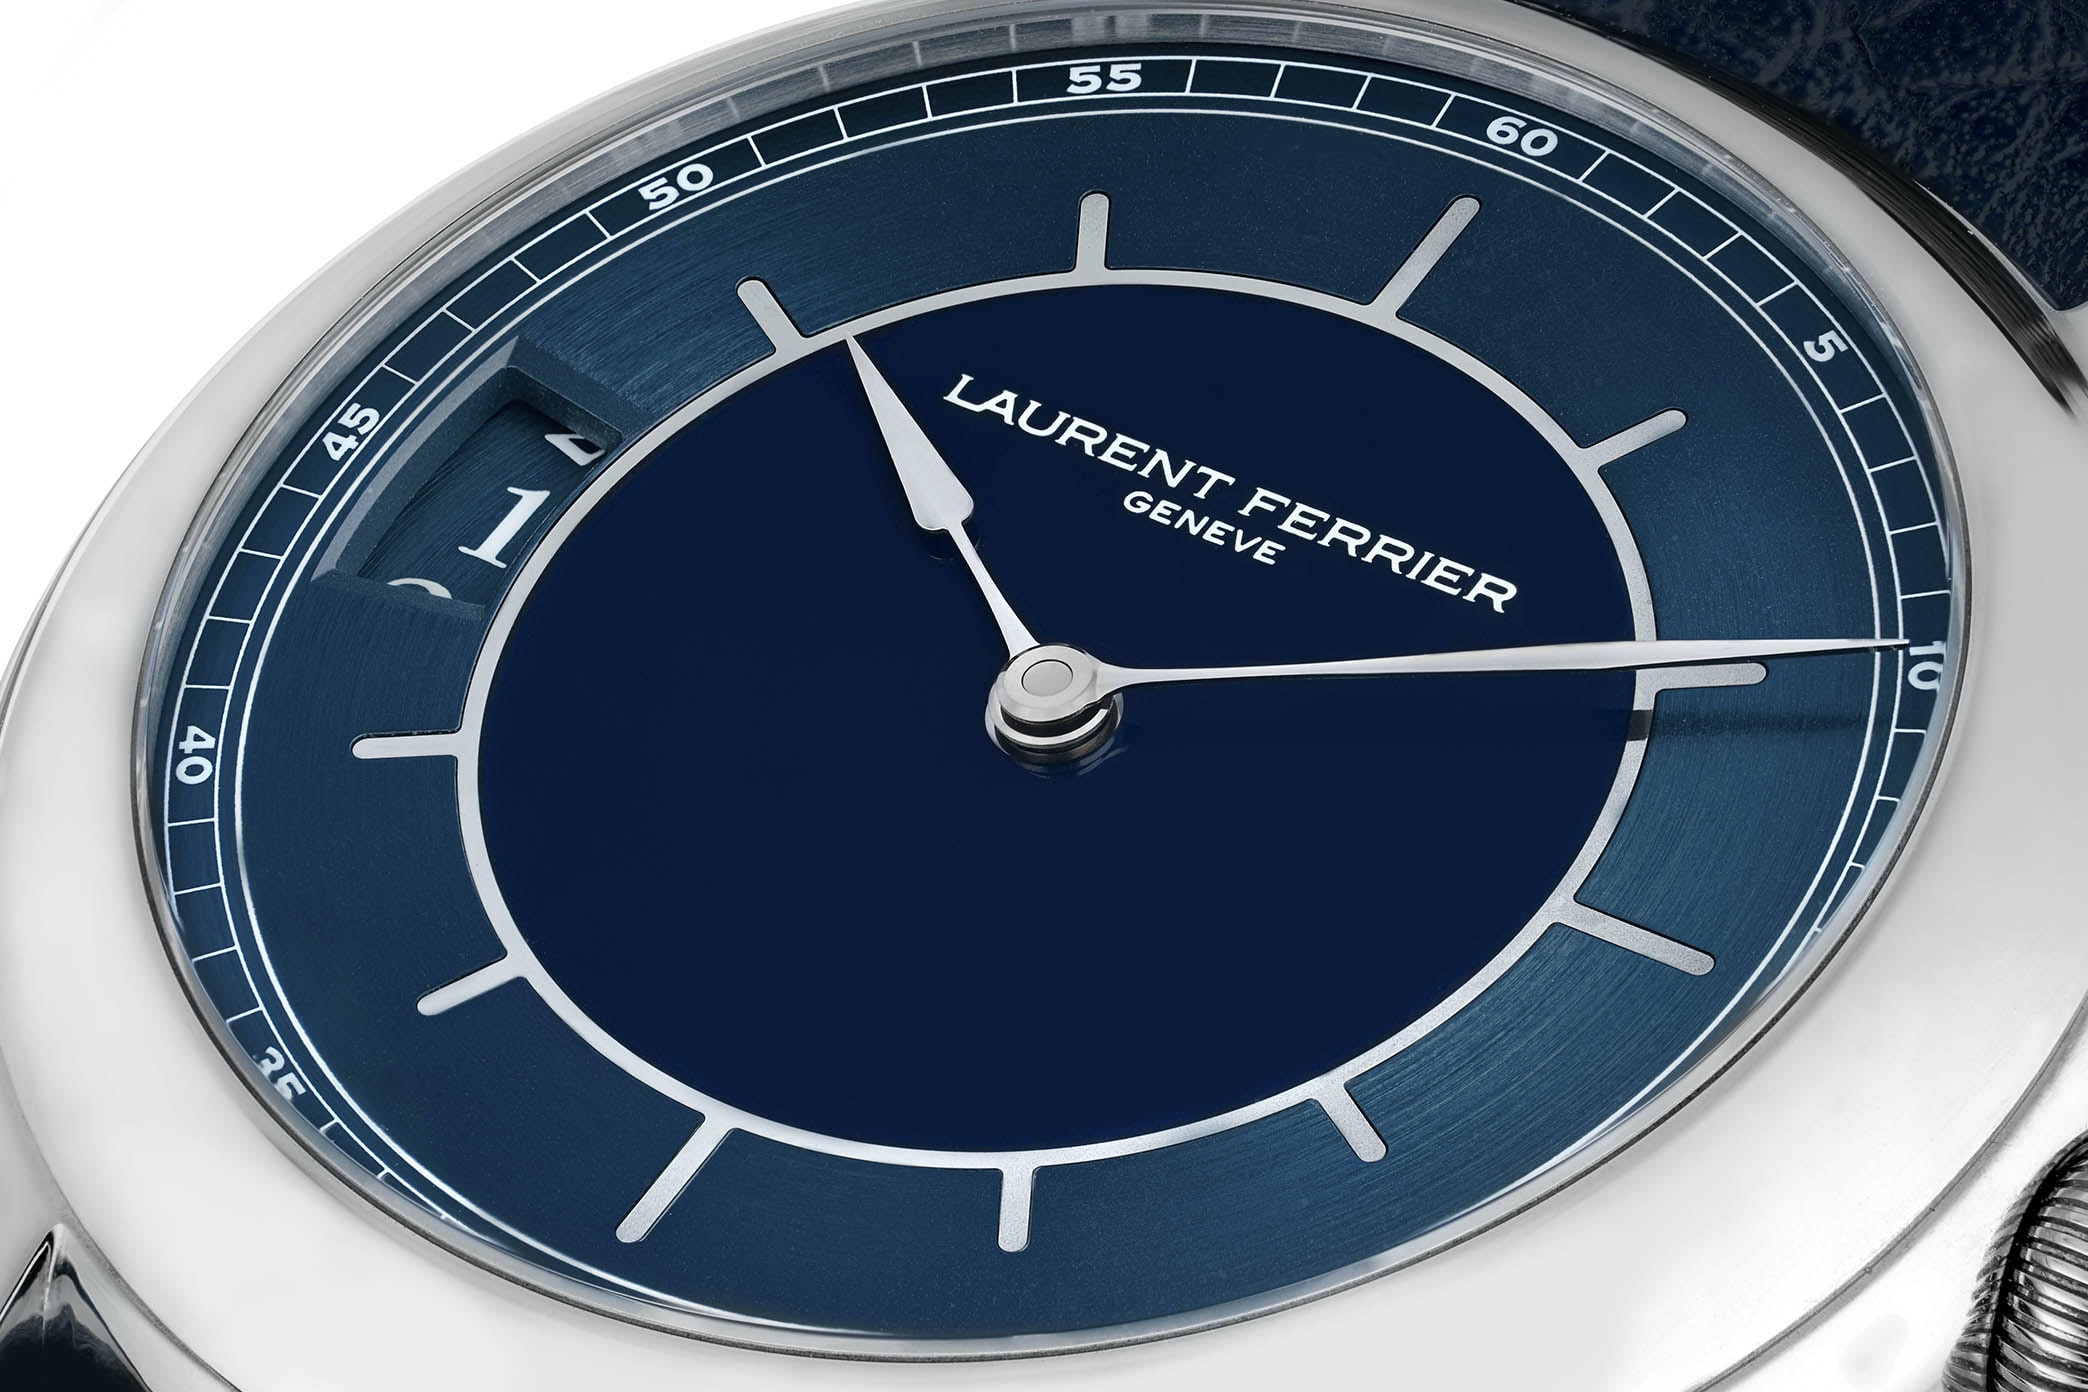 In The Shop: Introducing The Laurent Ferrier Traveller Limited Edition For HODINKEE LE LaurentFerrier Close